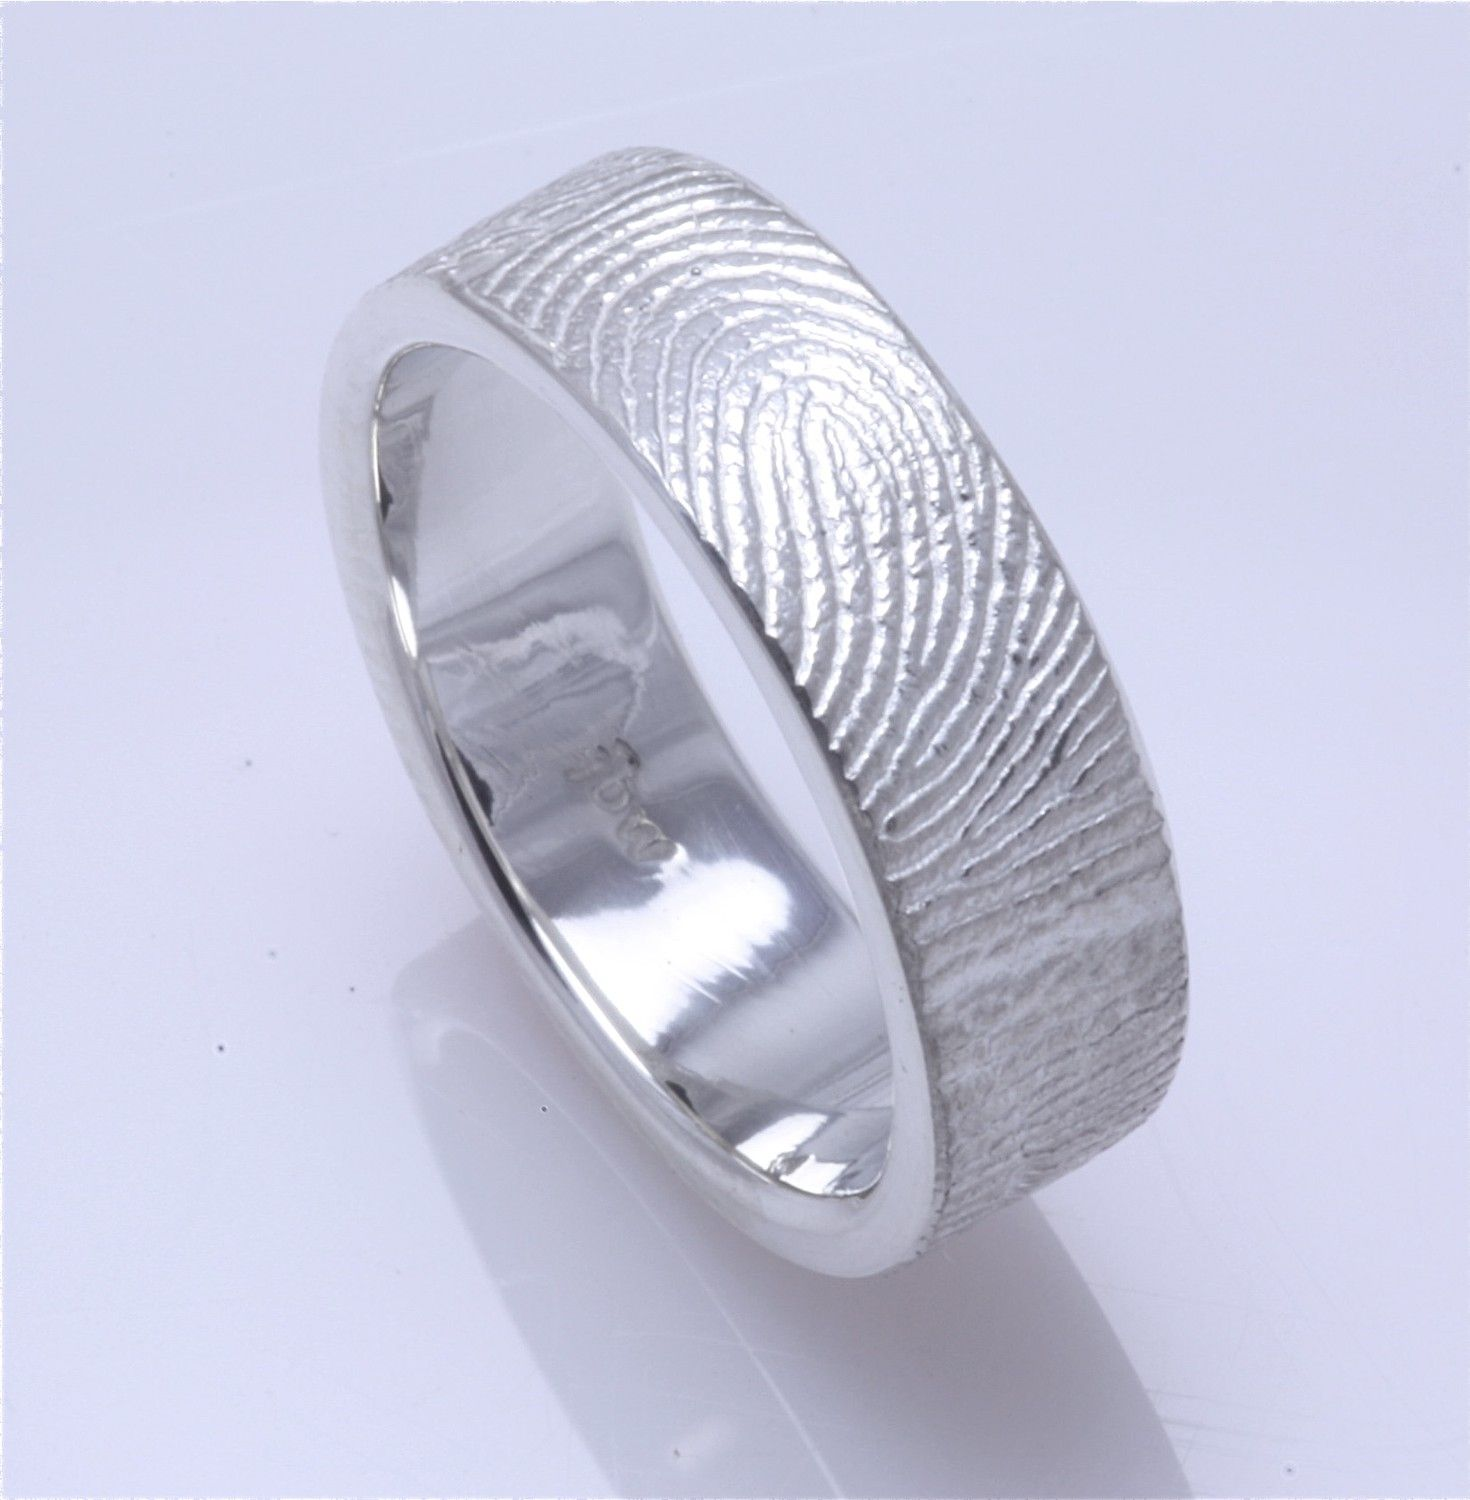 the custom silver around wedding pin german inside ring men rings titanium wrapped with sterling second fingerprint ii s bundesadler signet